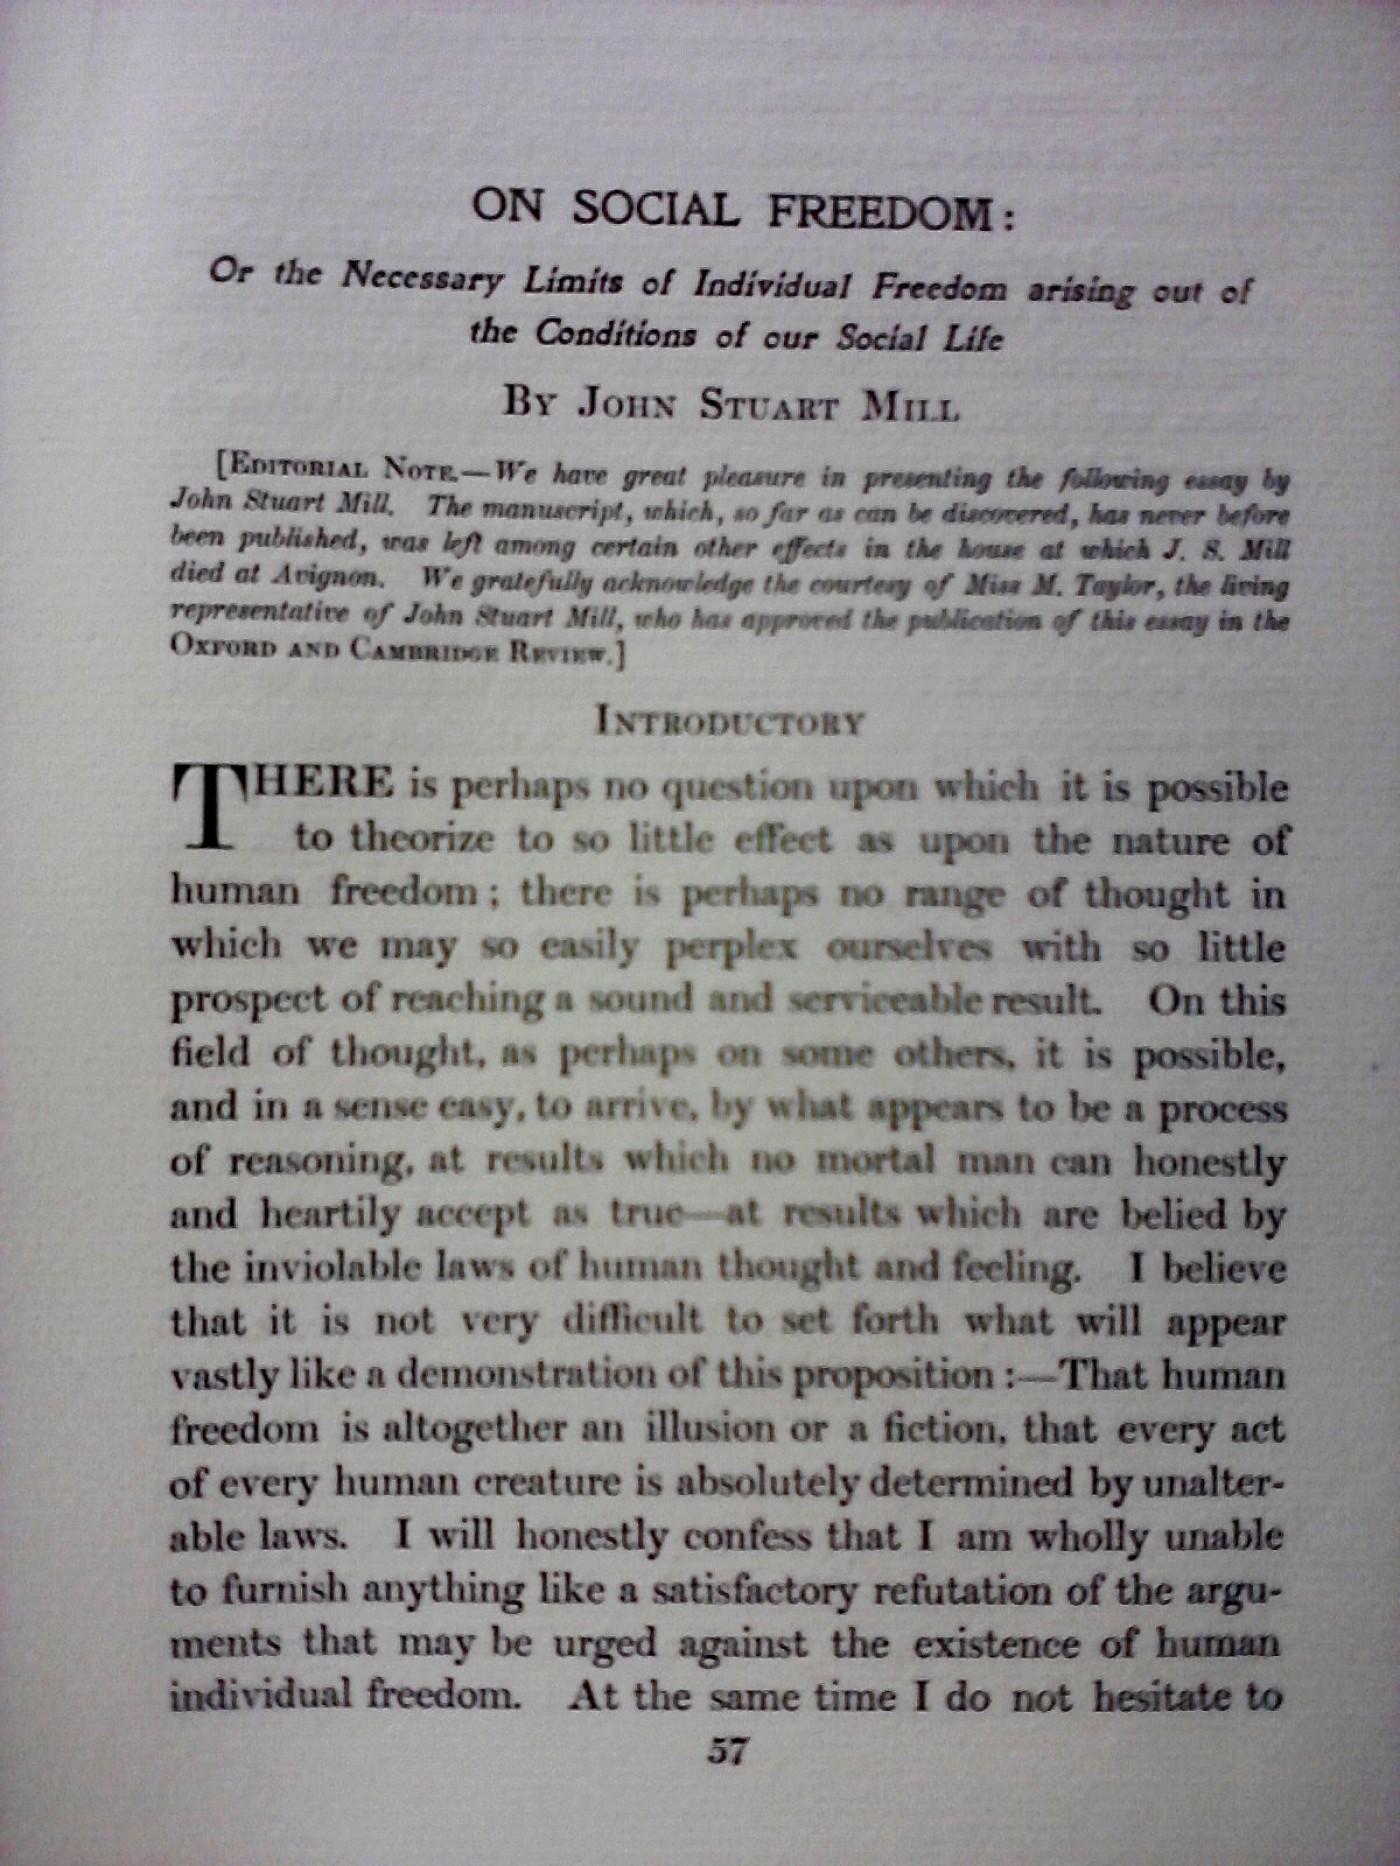 006 Essay Example Freedom Definition On Social In Oxford And Cambridge Review 1907 Rare Meaning Of Speech 1400